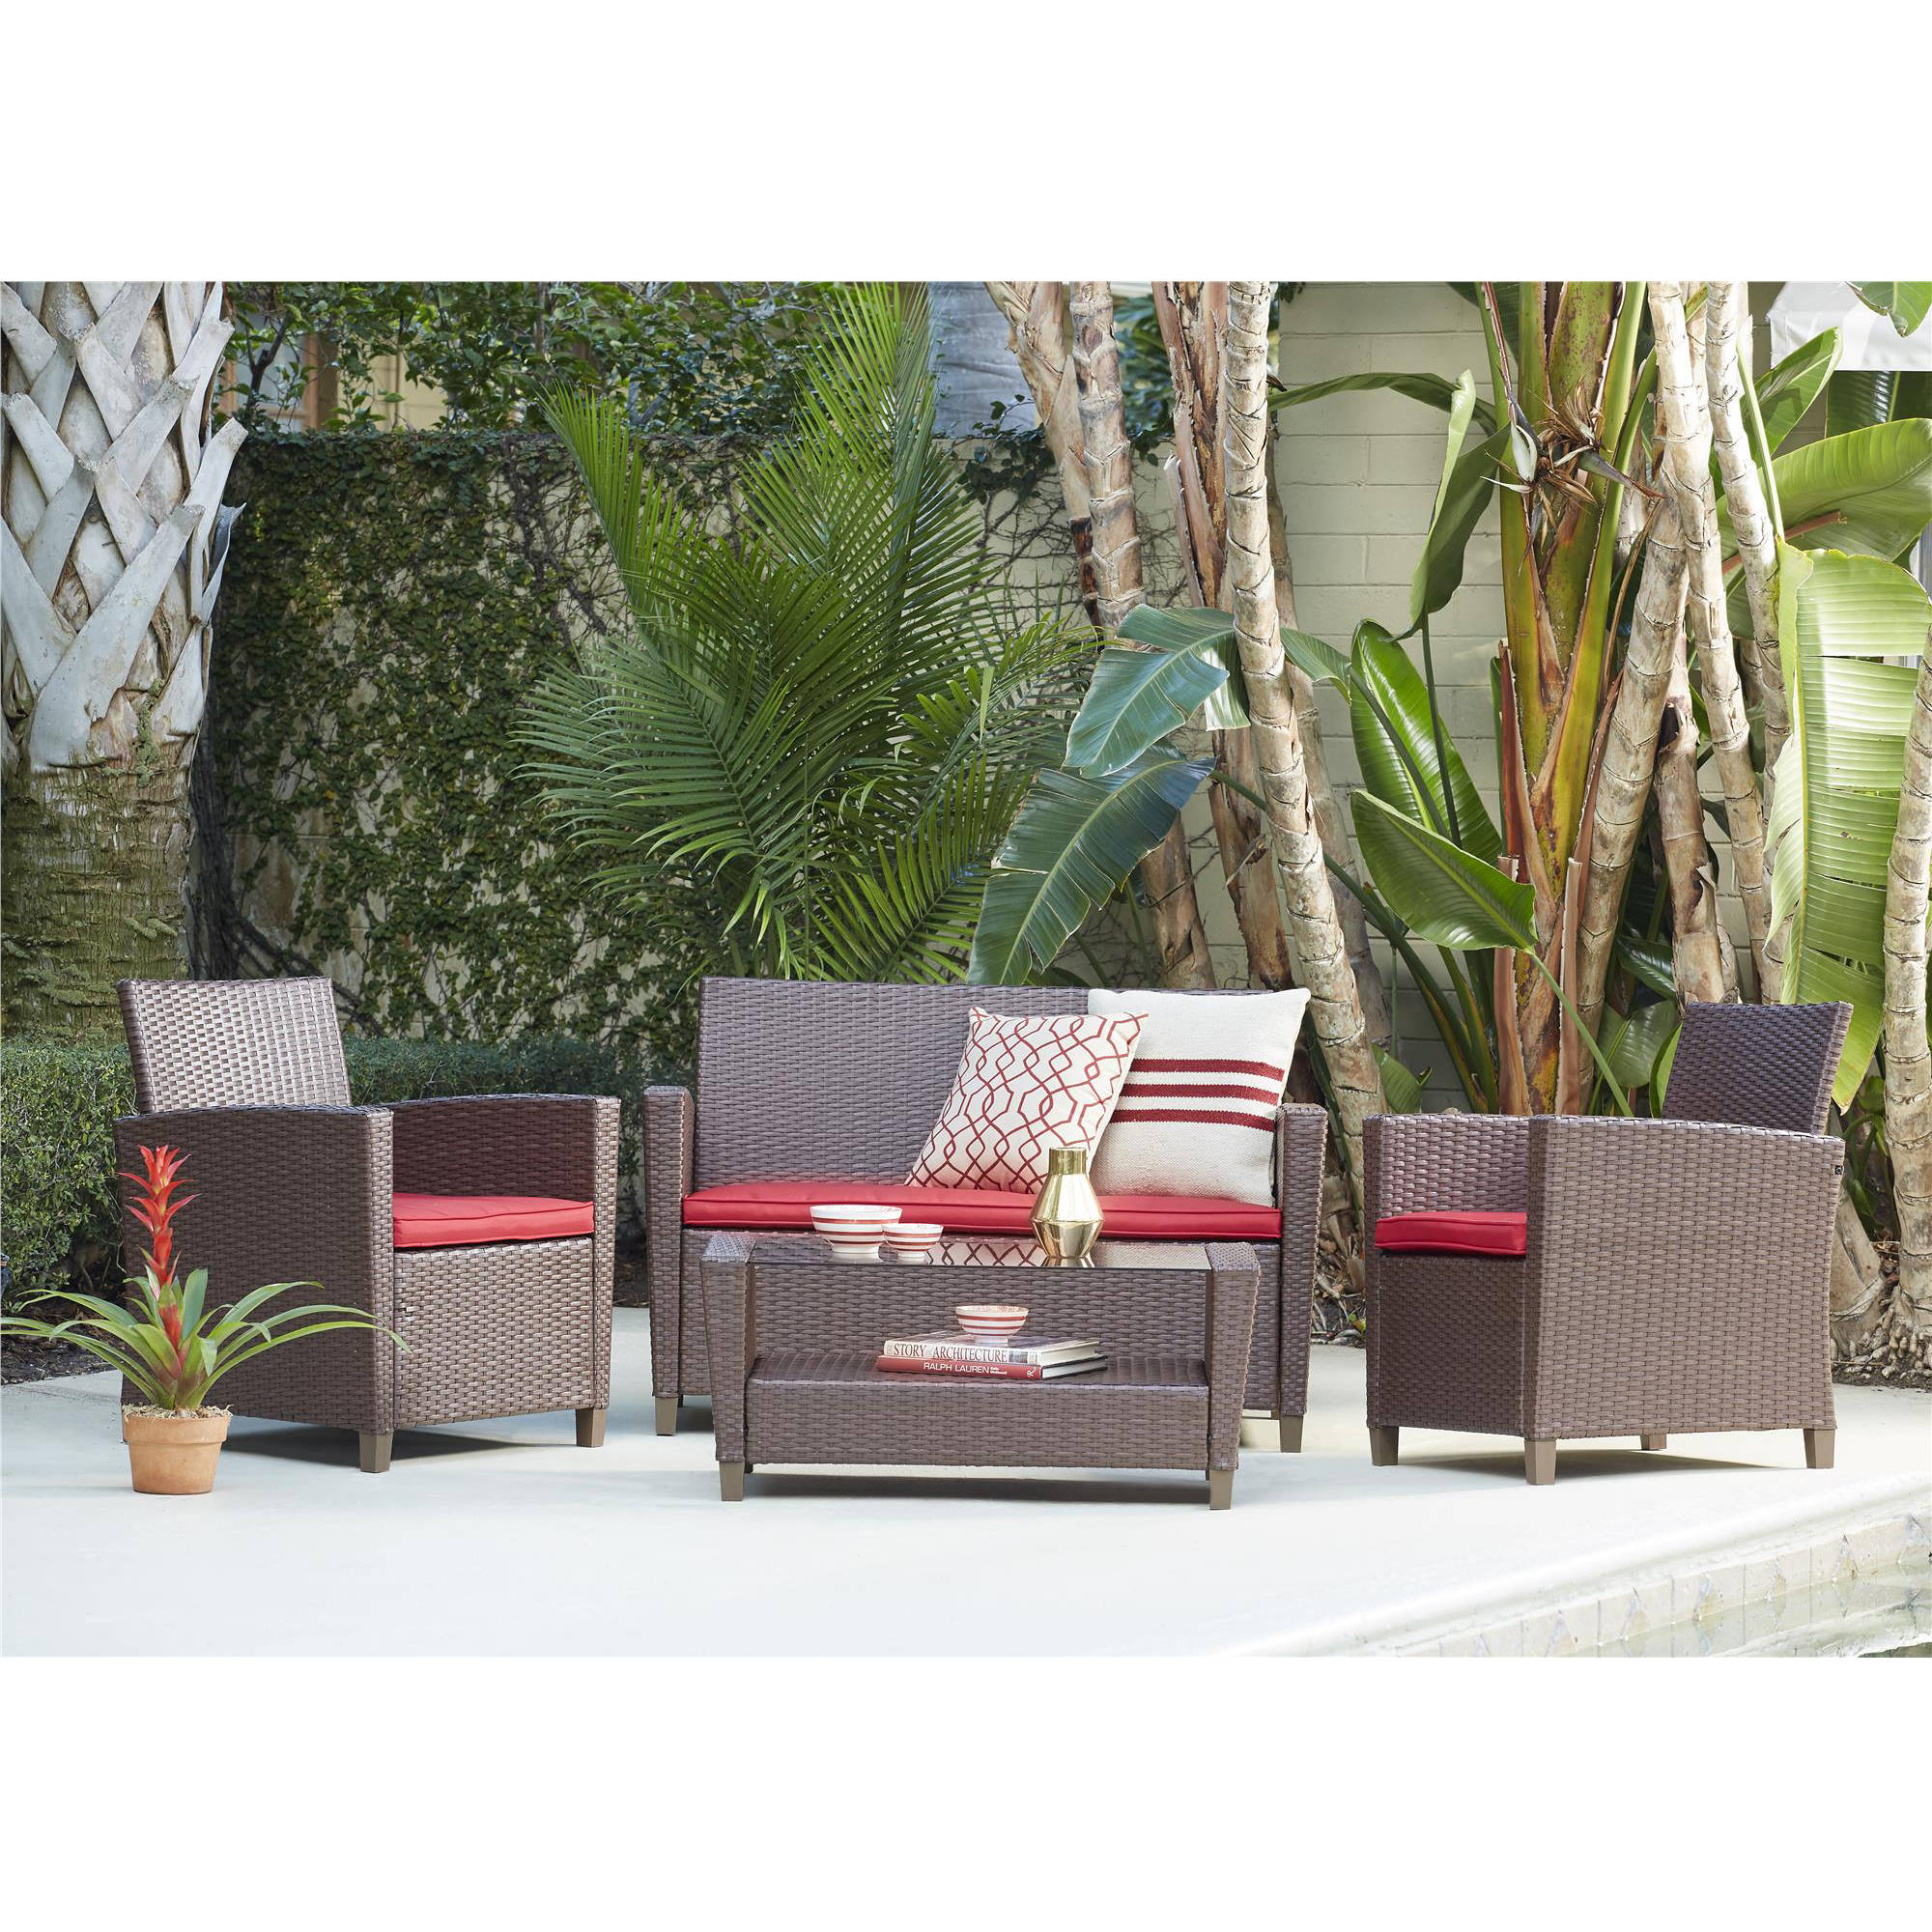 Cosco Outdoor Living Malmo 4-Piece Wicker Conversation Set, Brown by Cosco